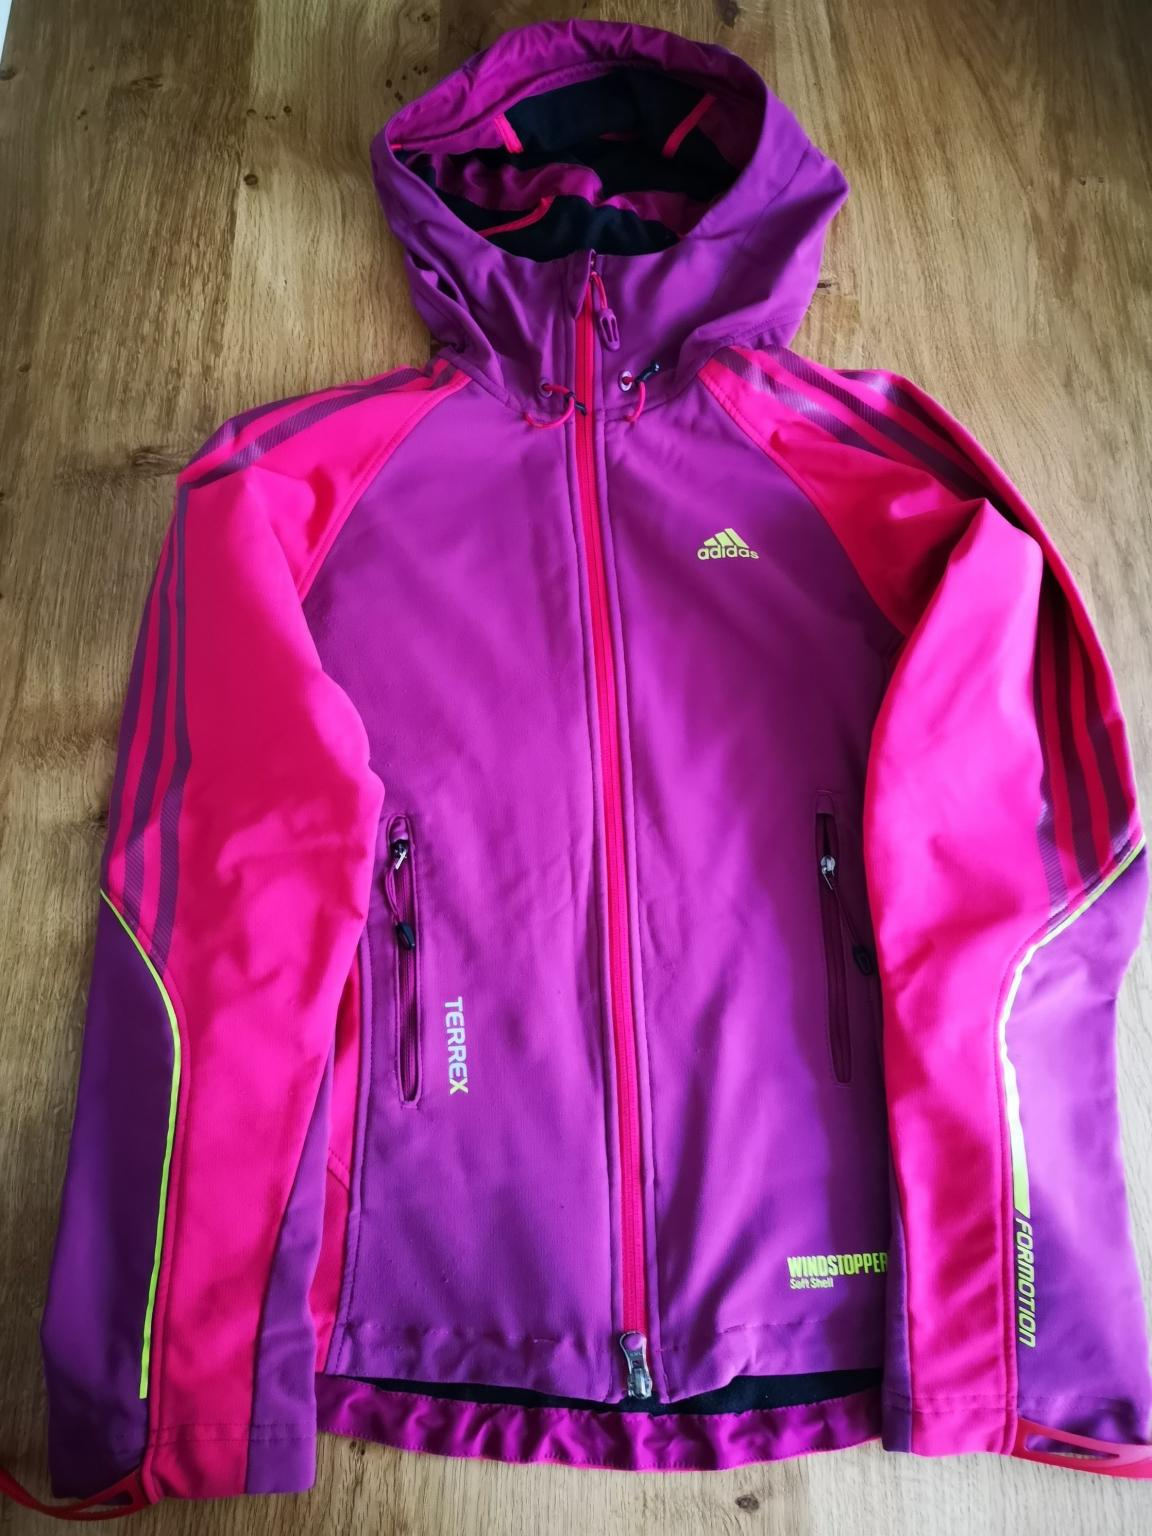 Adidas Softshell Windstopper Jacke Damen 38